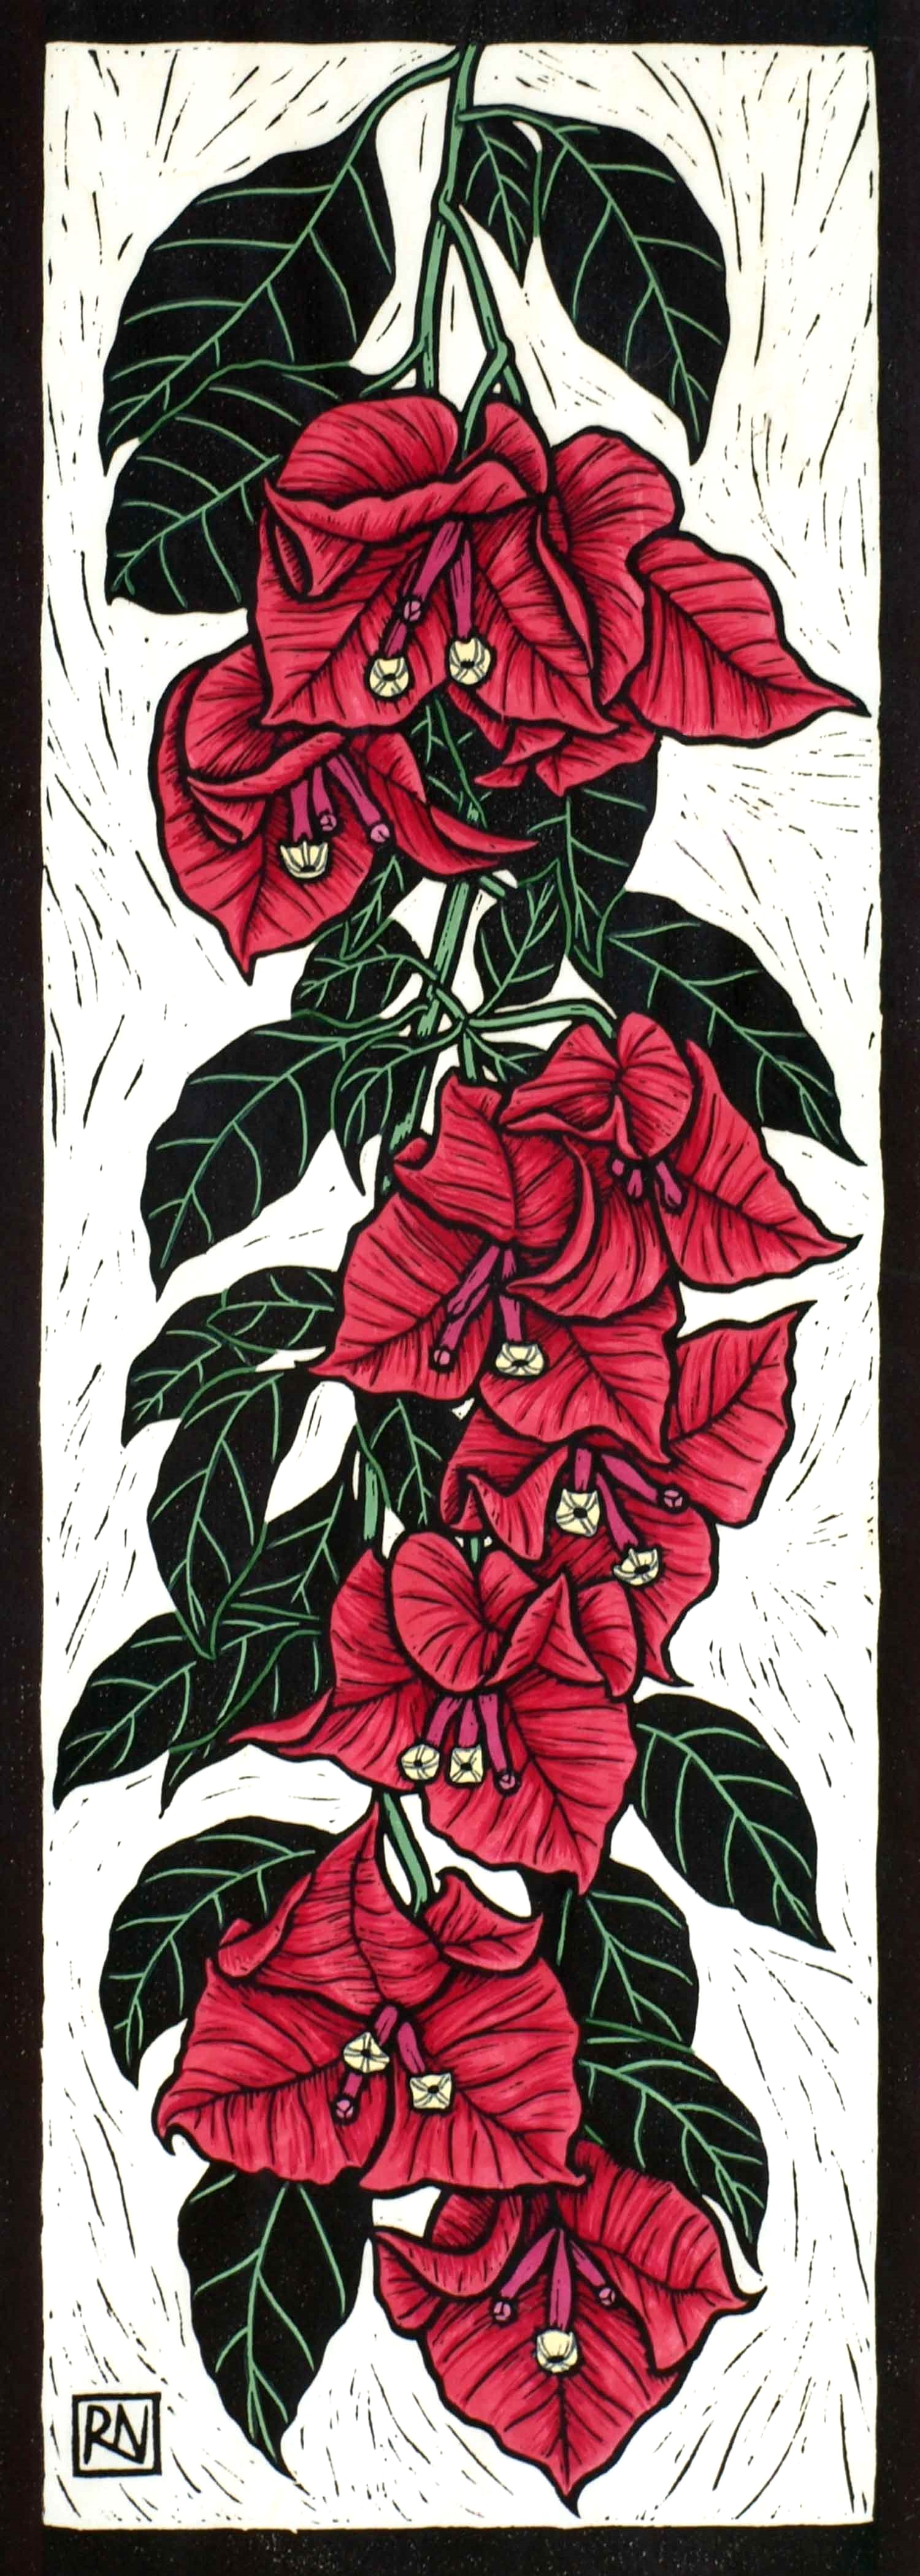 BOUGAINVILLEA  50 X 18 CM, EDITION OF 50  HAND-COLOURED LINOCUT ON HANDMADE JAPANESE PAPER $650